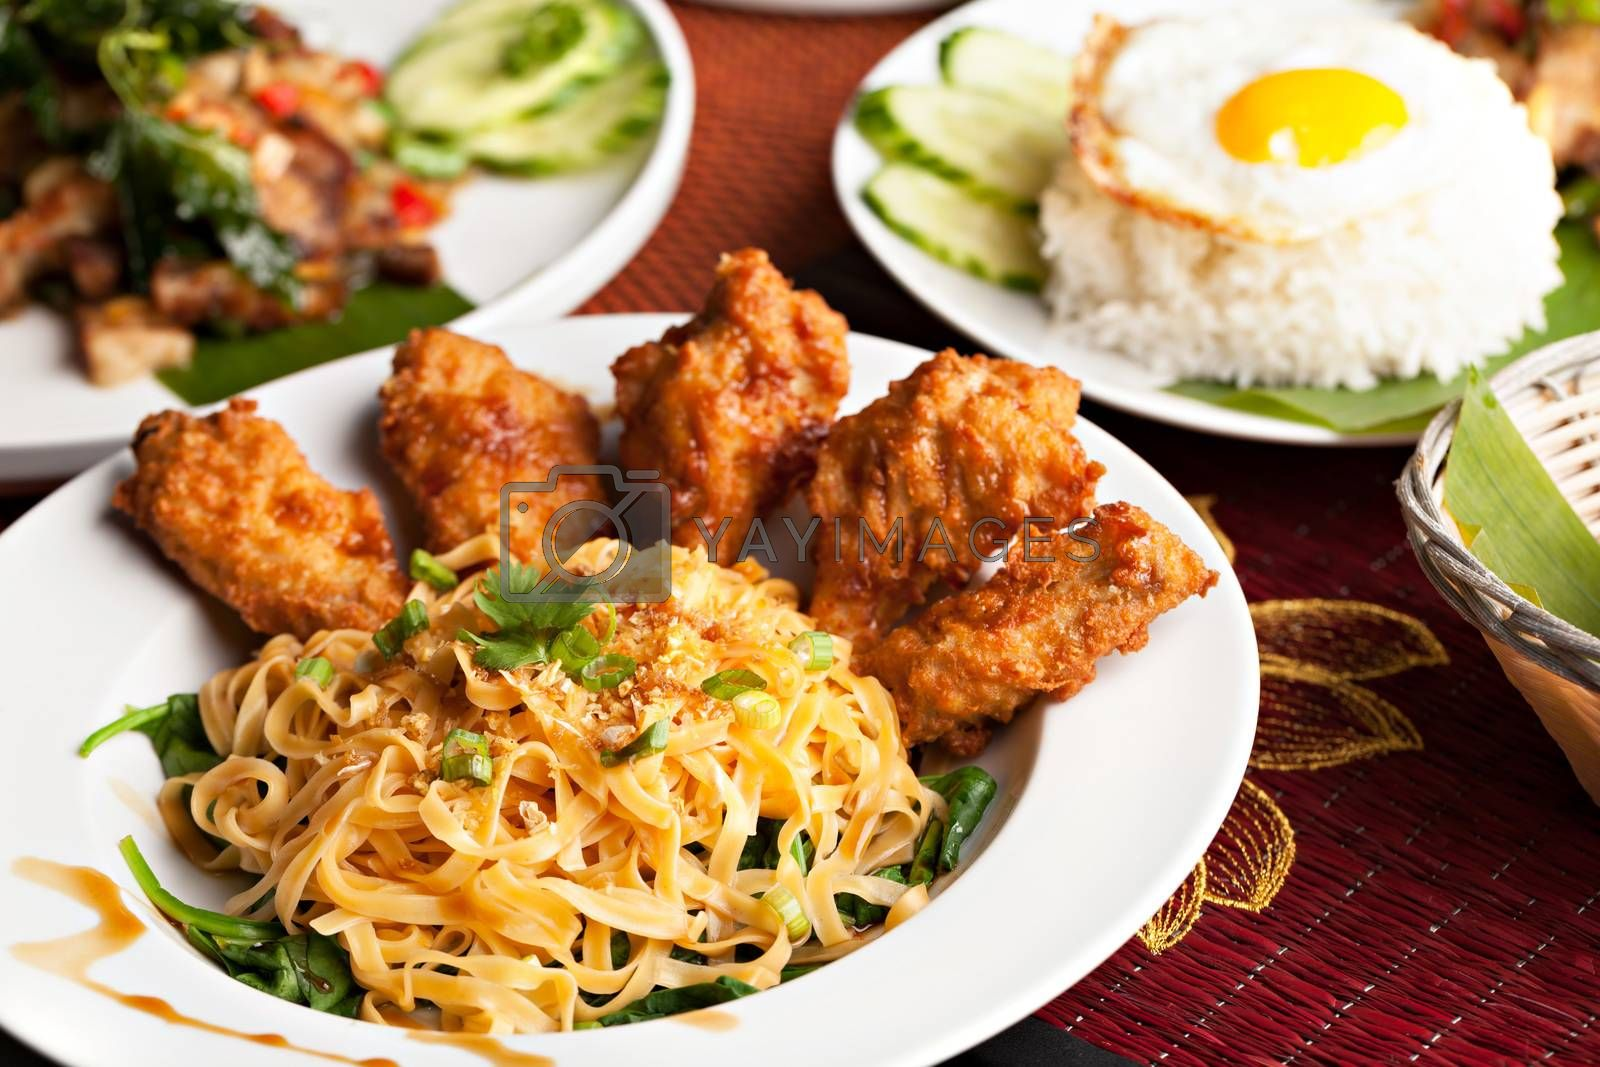 Thai style fried siracha chicken wings on a round white plate with egg noodles and spinach.